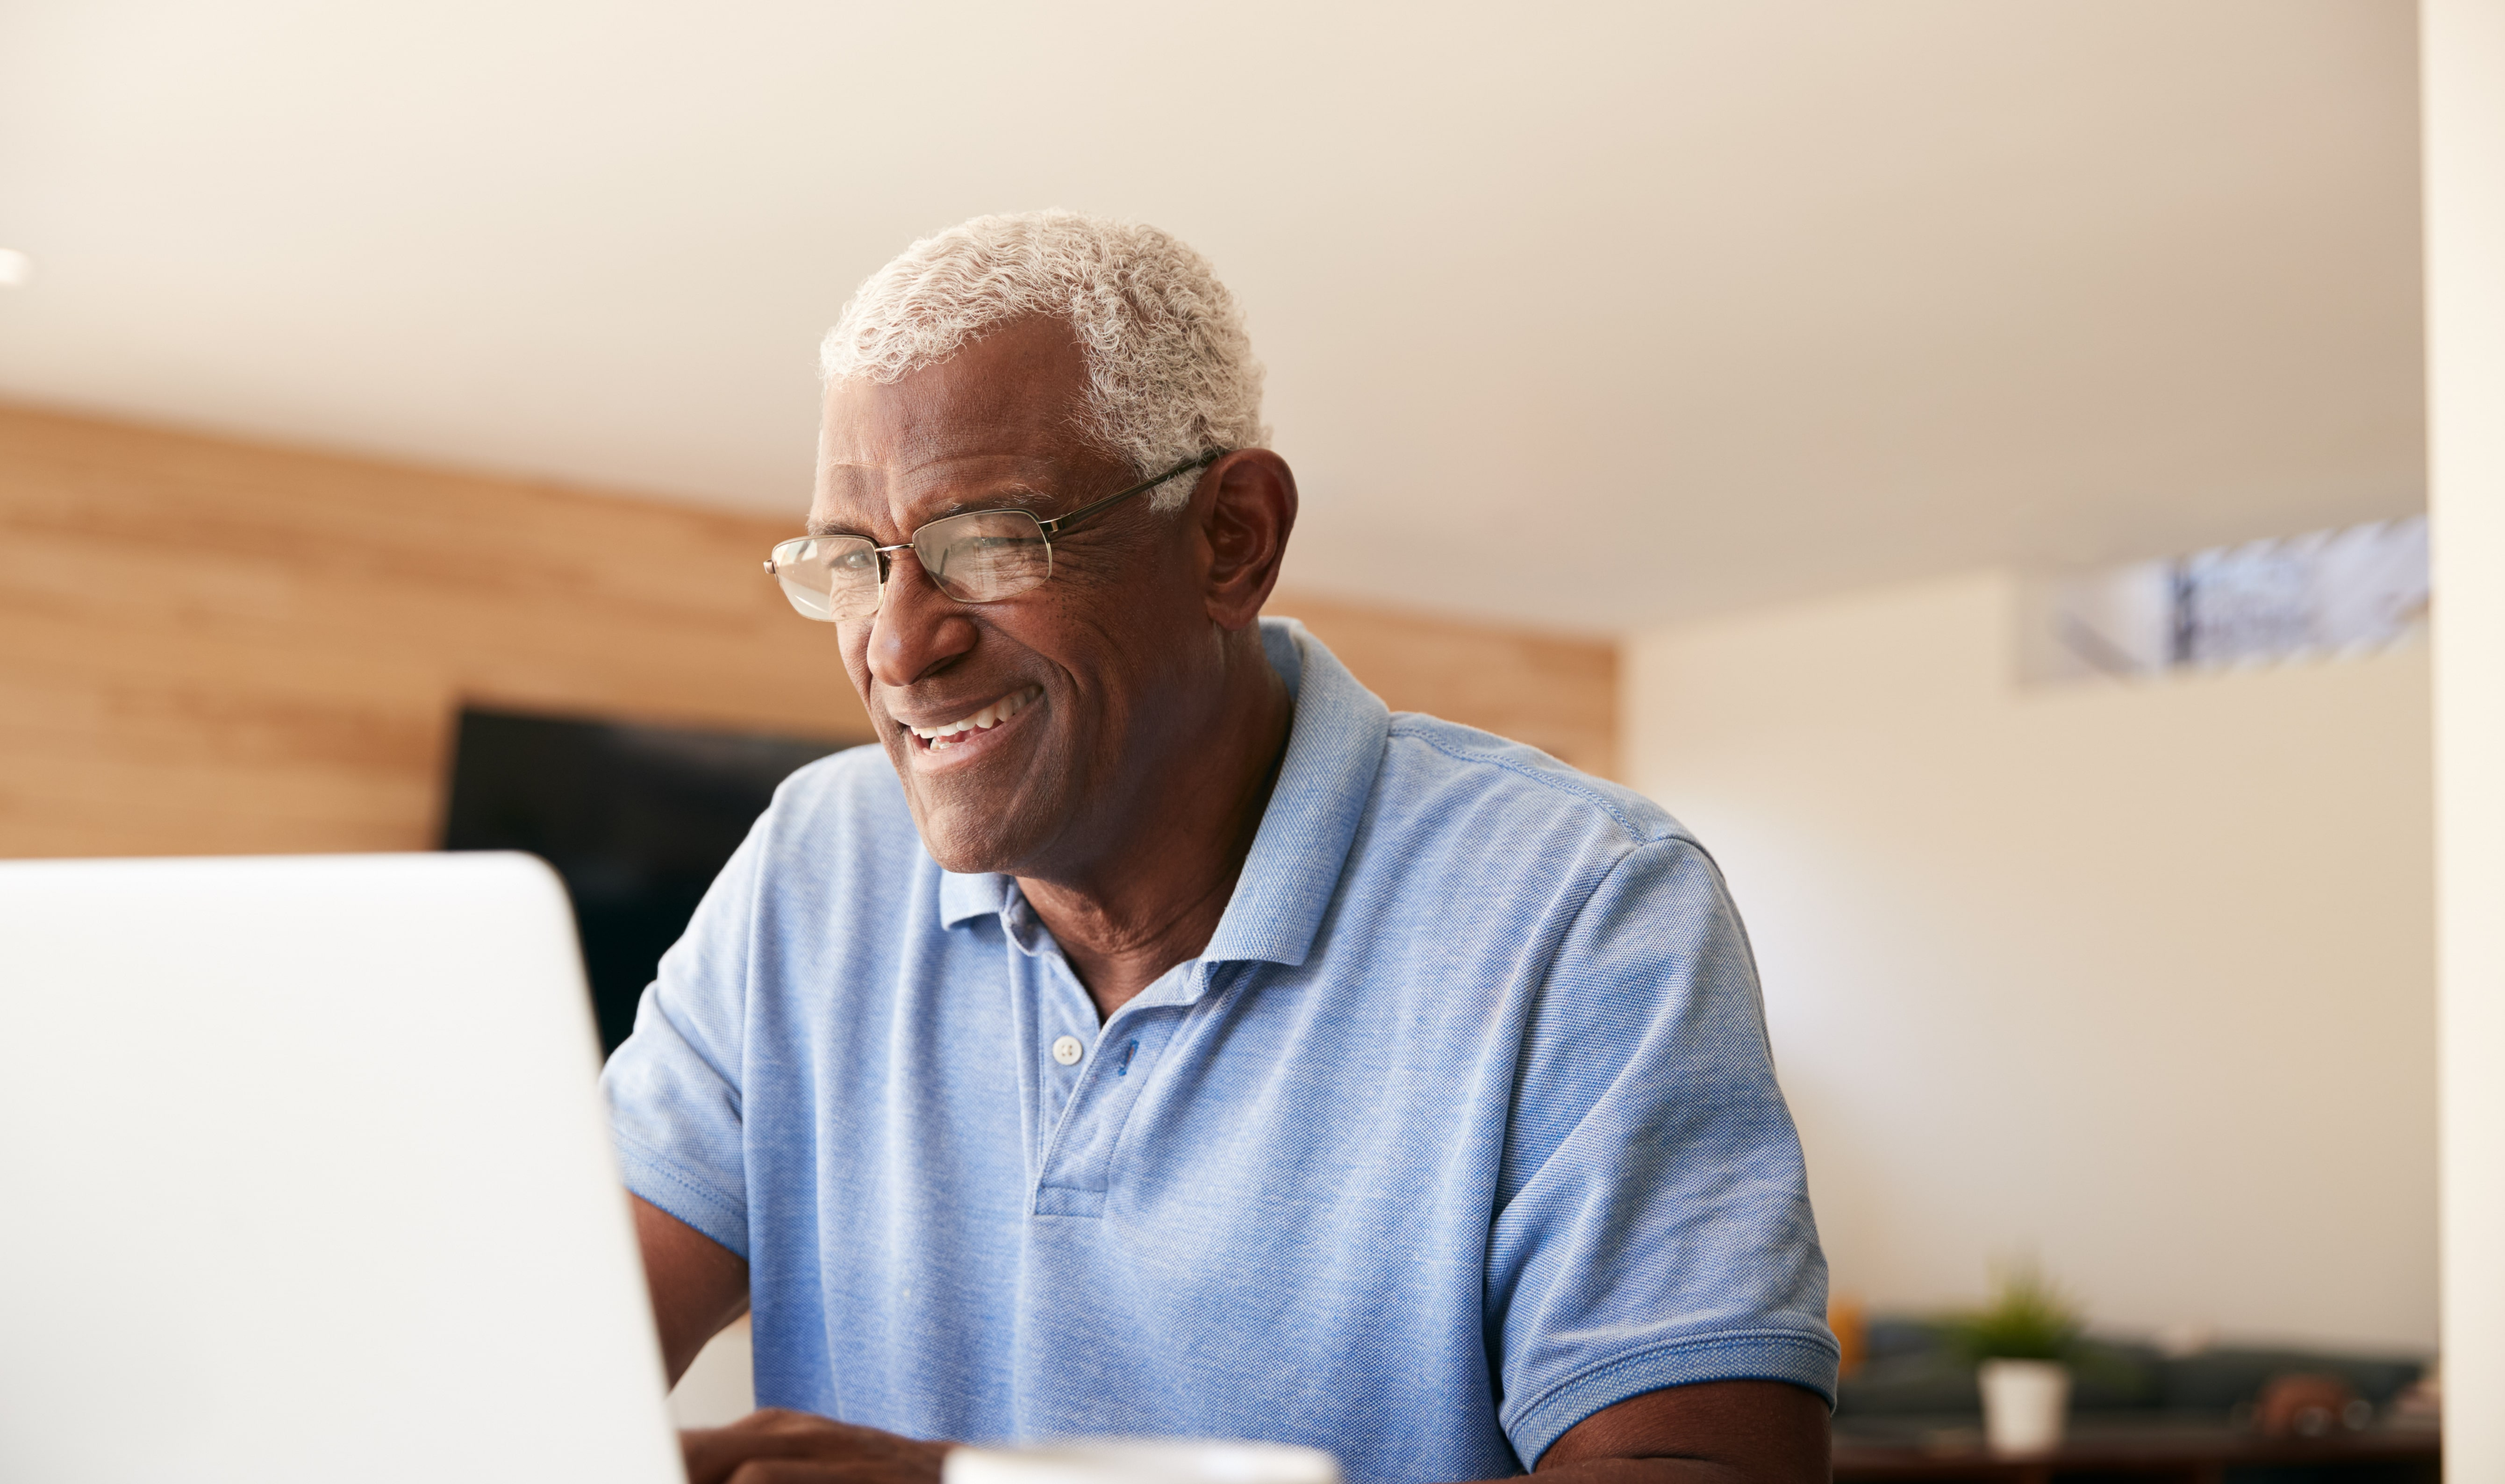 What Is a Zero-Based Budget, and How Can Seniors Use One?